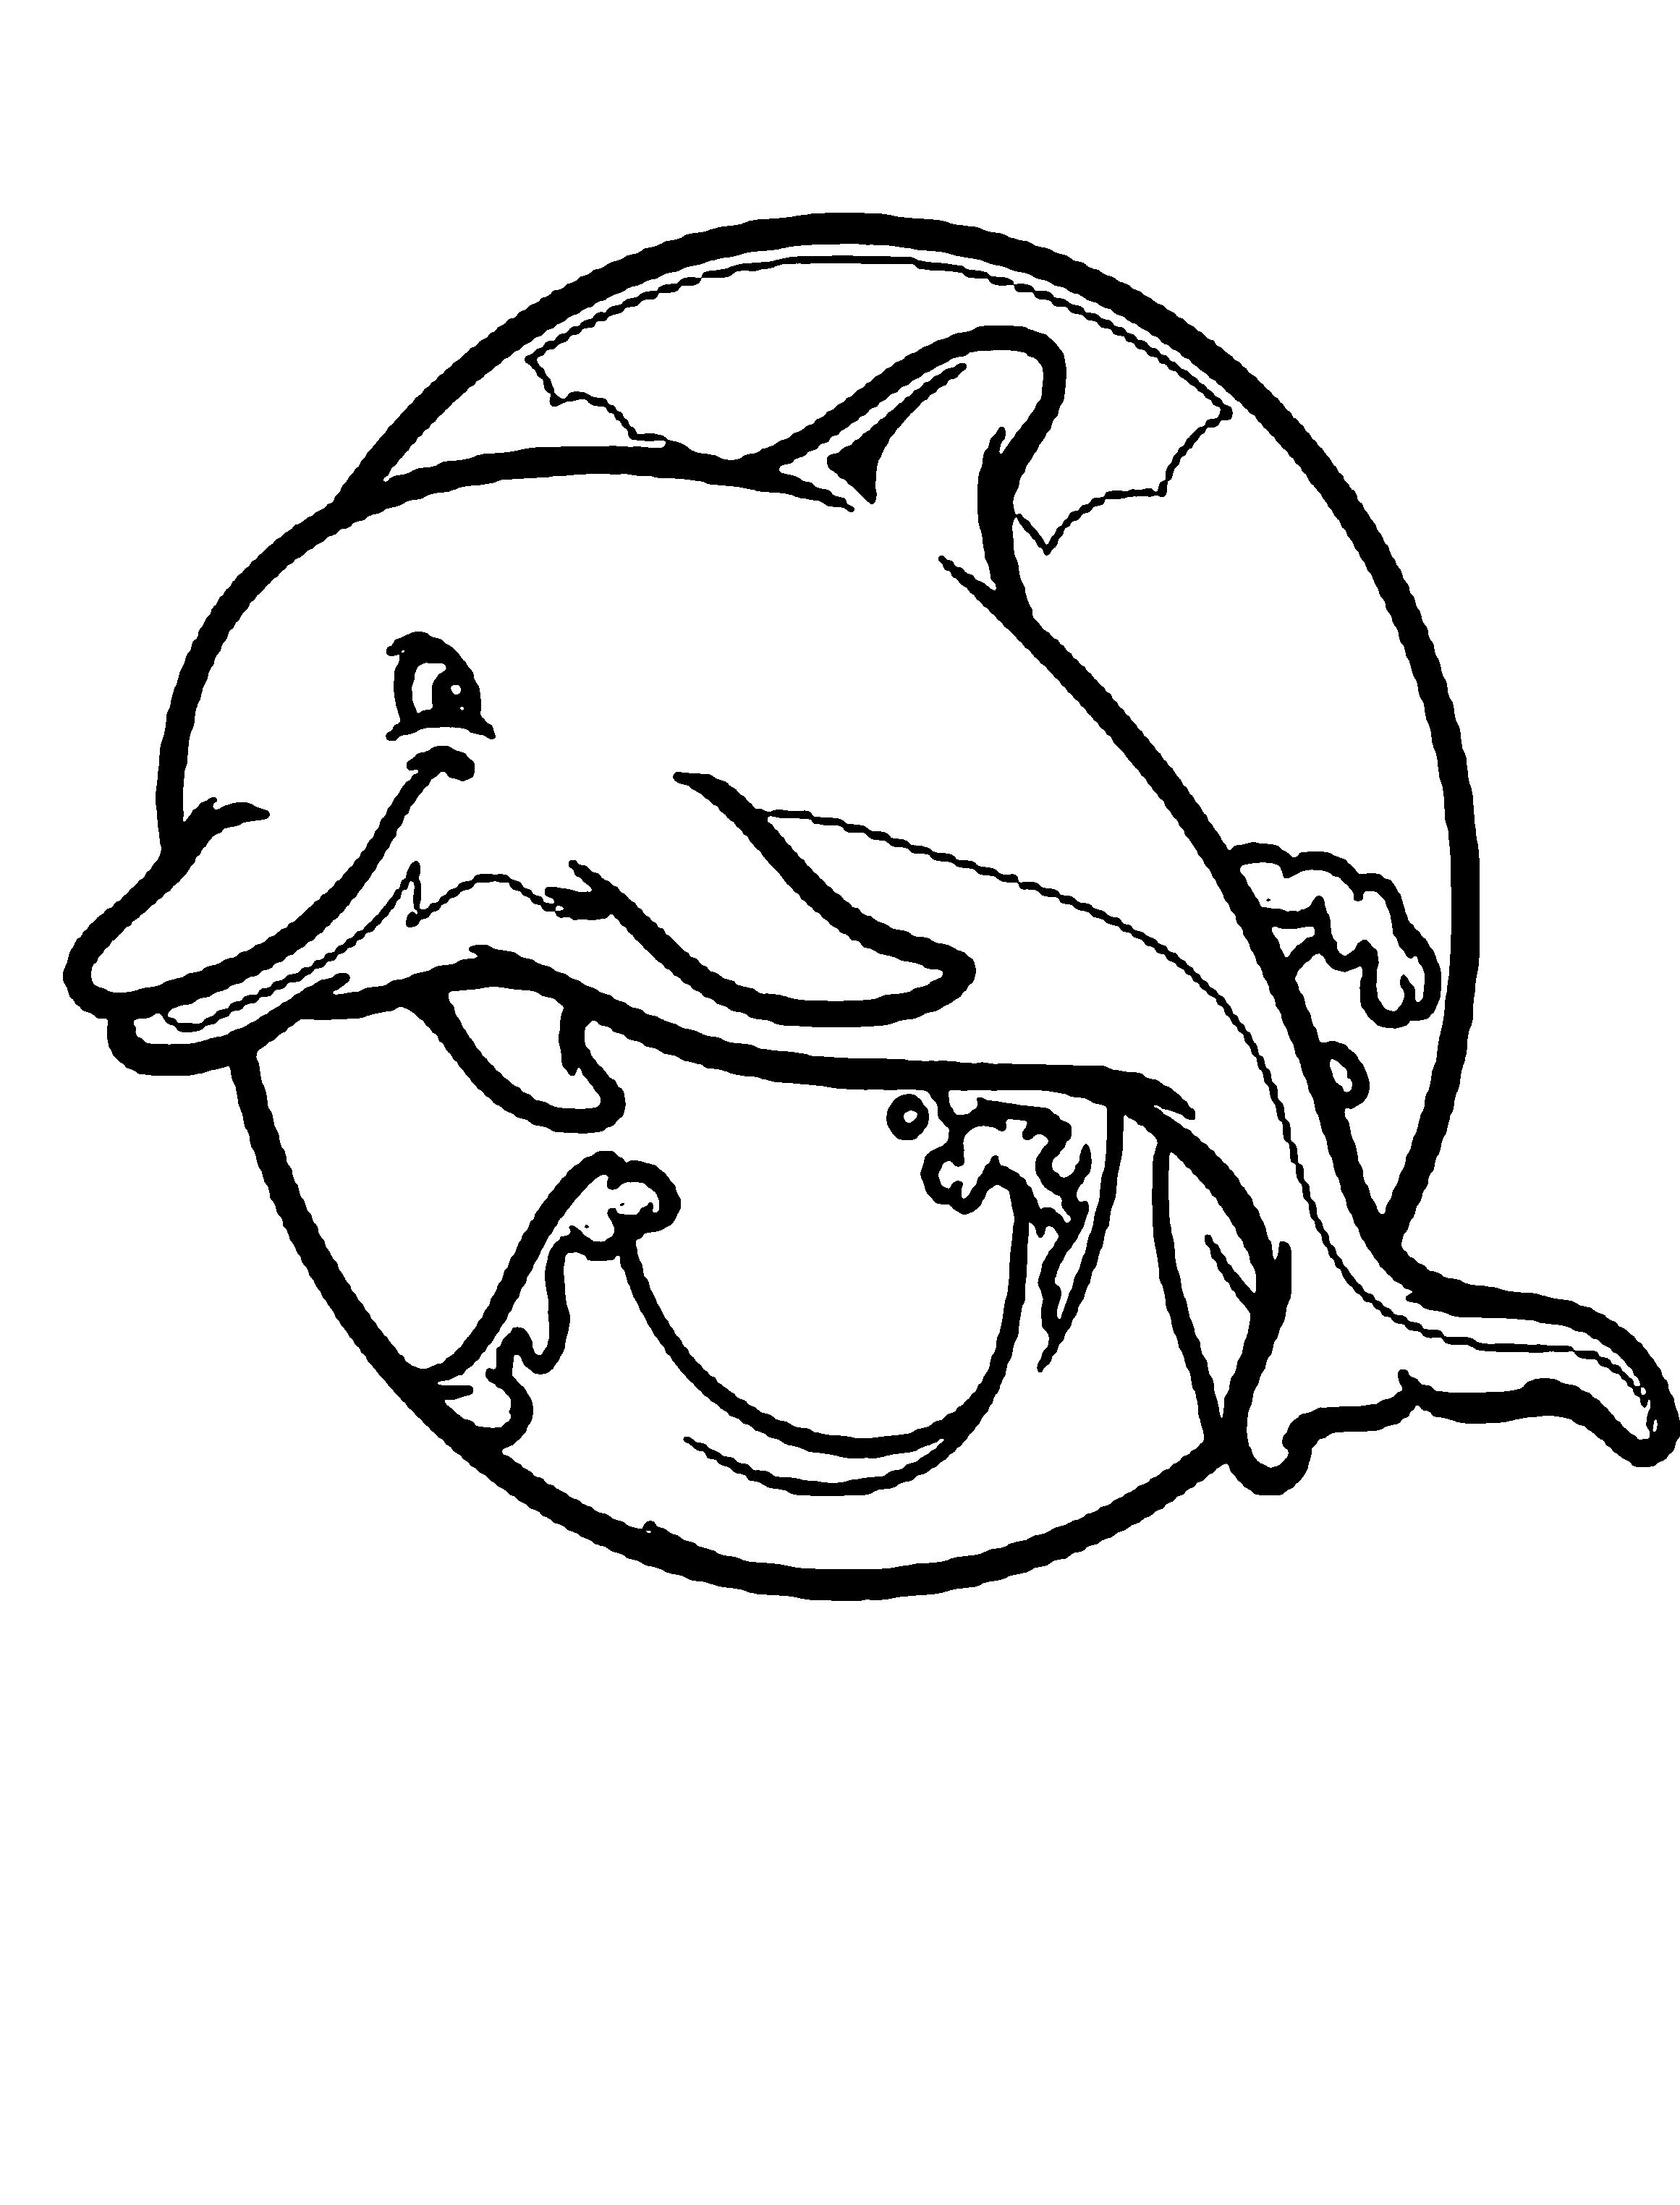 Dolphin Coloring Pages PDF - Free Coloring Sheets  Dolphin